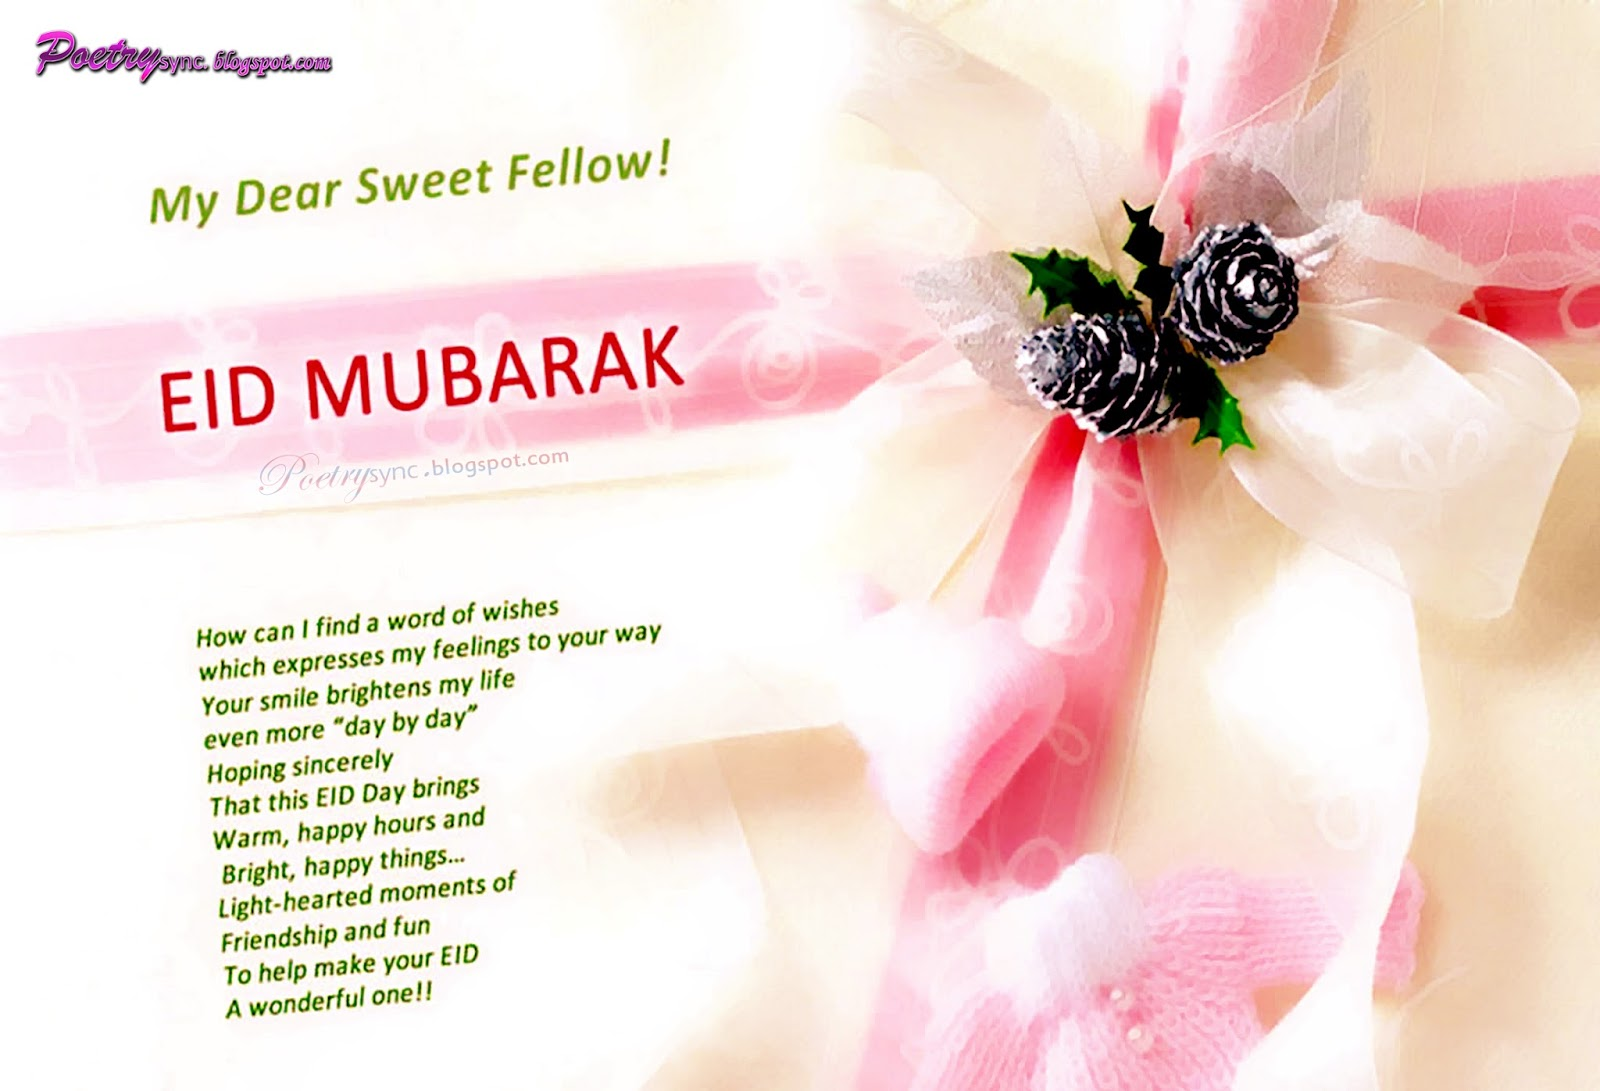 Happy eid mubarak wishes message for lovers with images stylish eid mubarak greetings message in arabic m4hsunfo